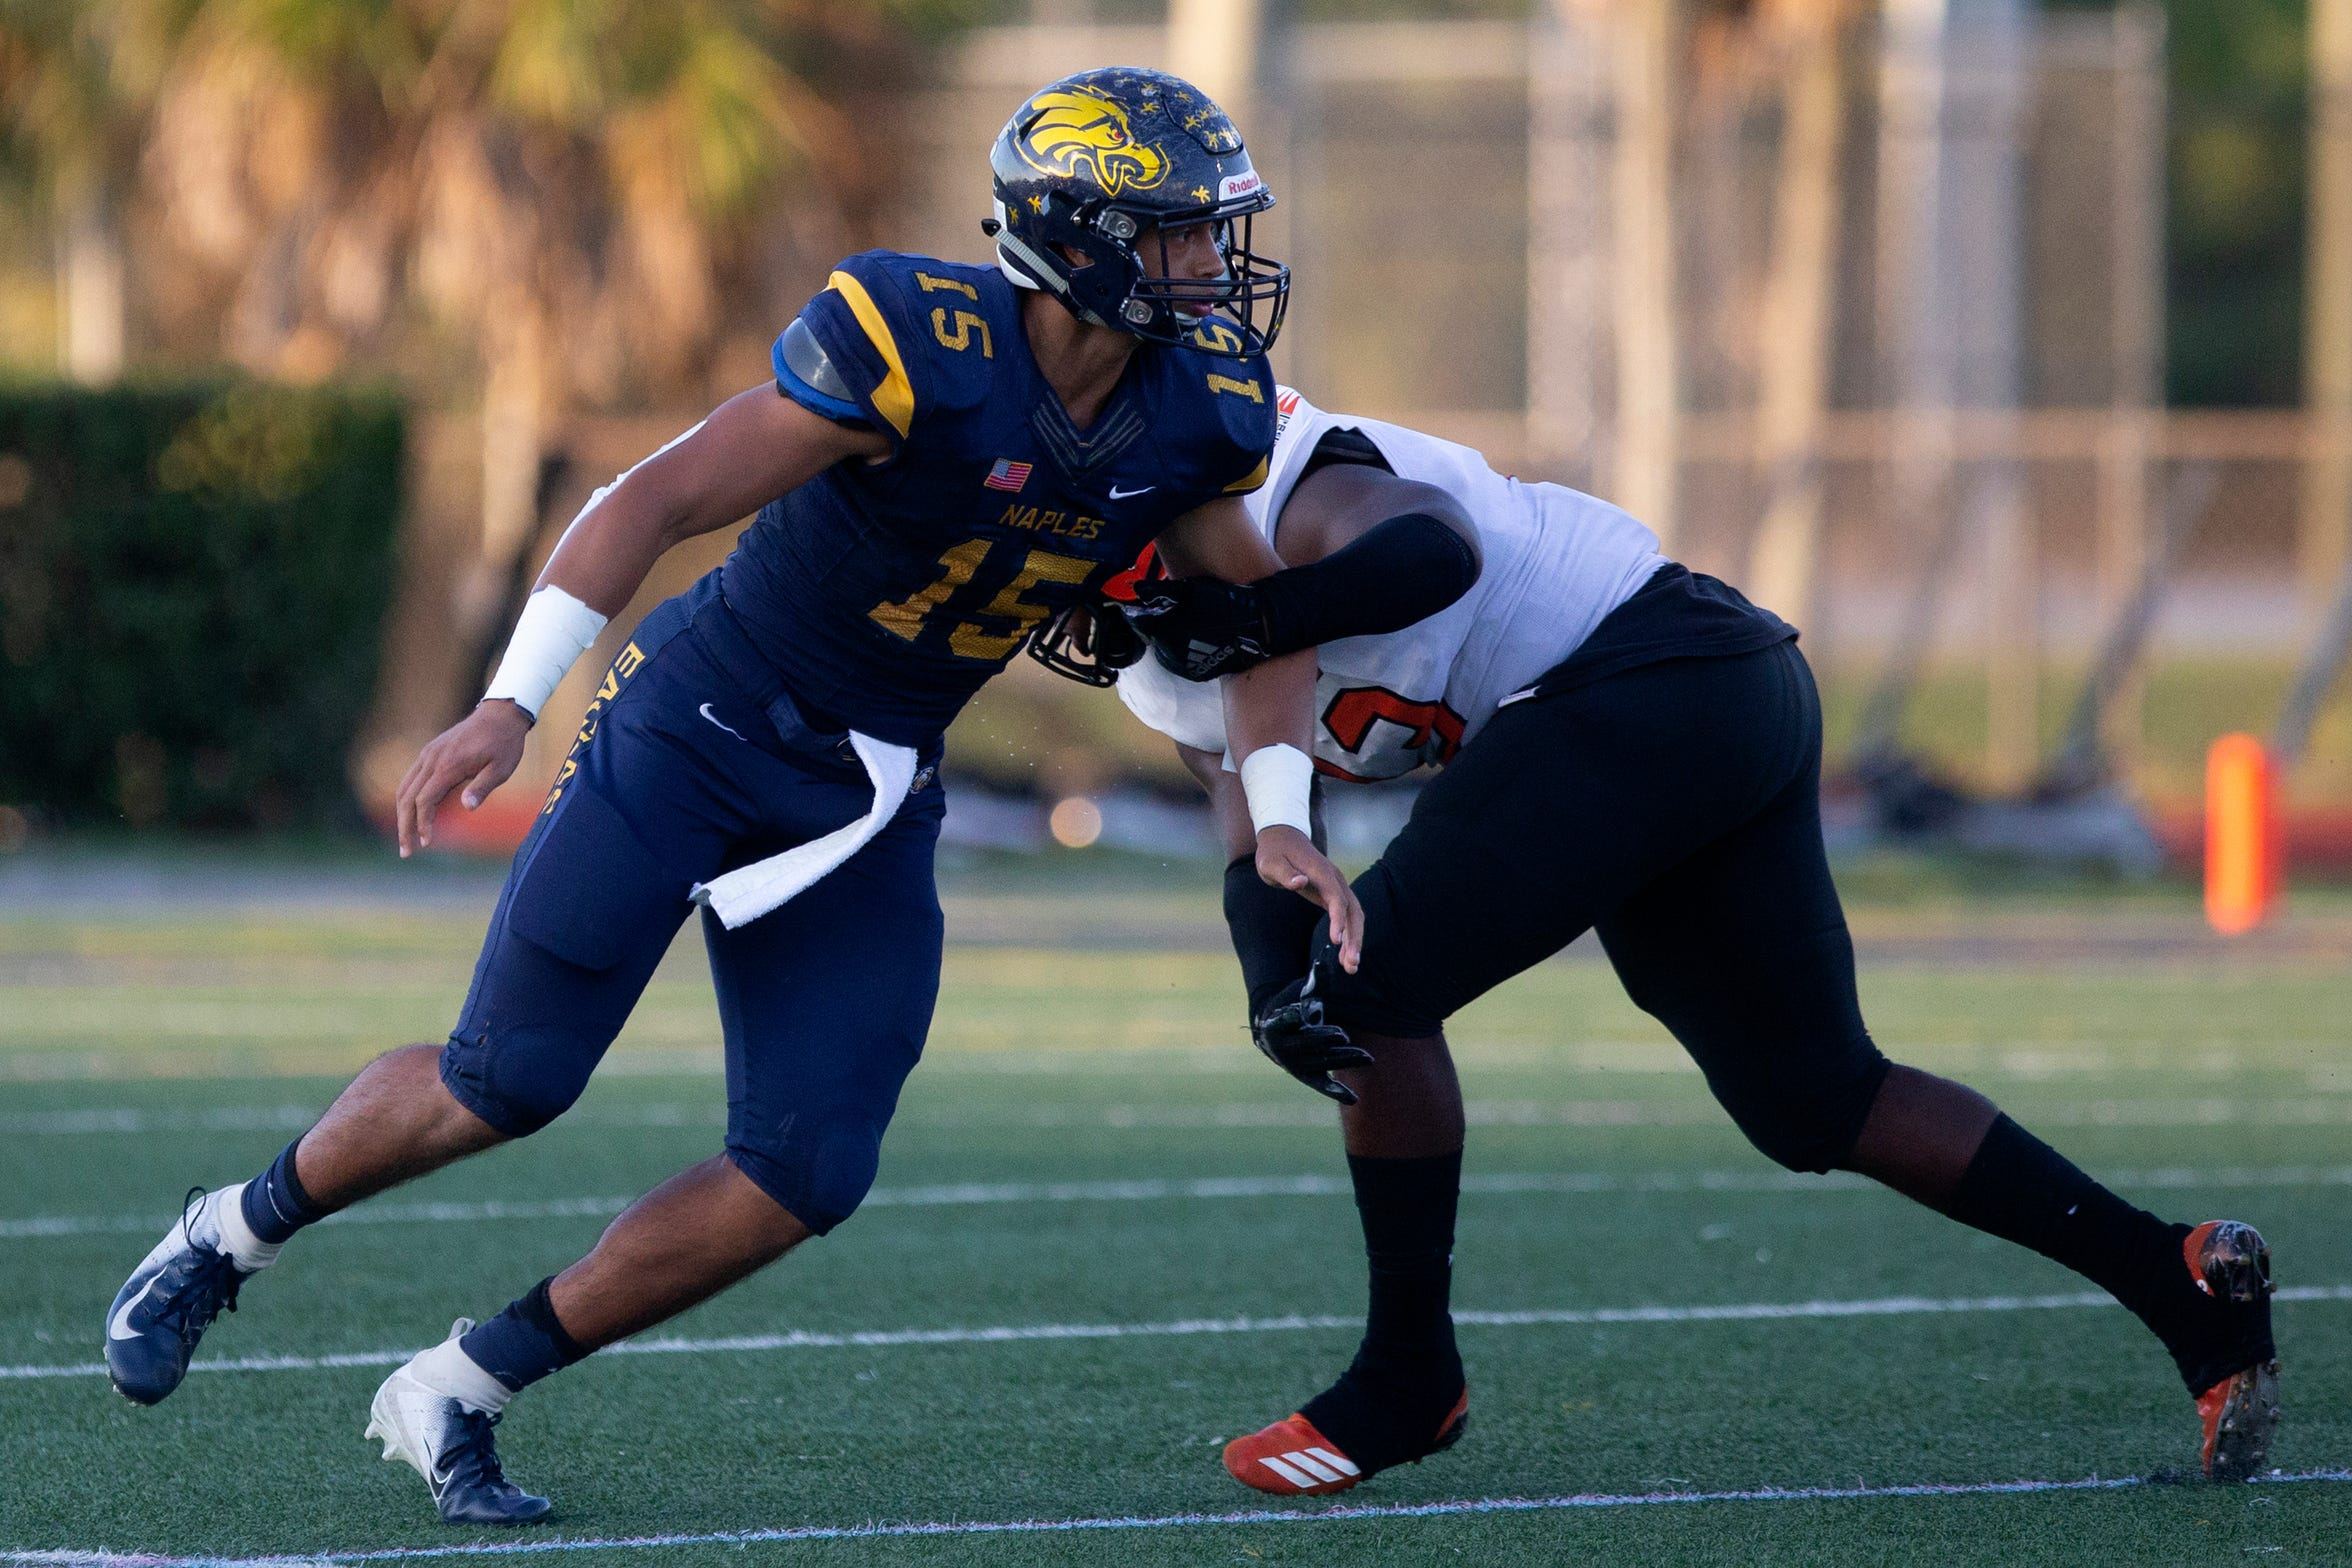 Naples High School's tight end Dominic Mammarelli takes on Miami Carol City High School, Friday, May 17, 2019 at Naples High School.